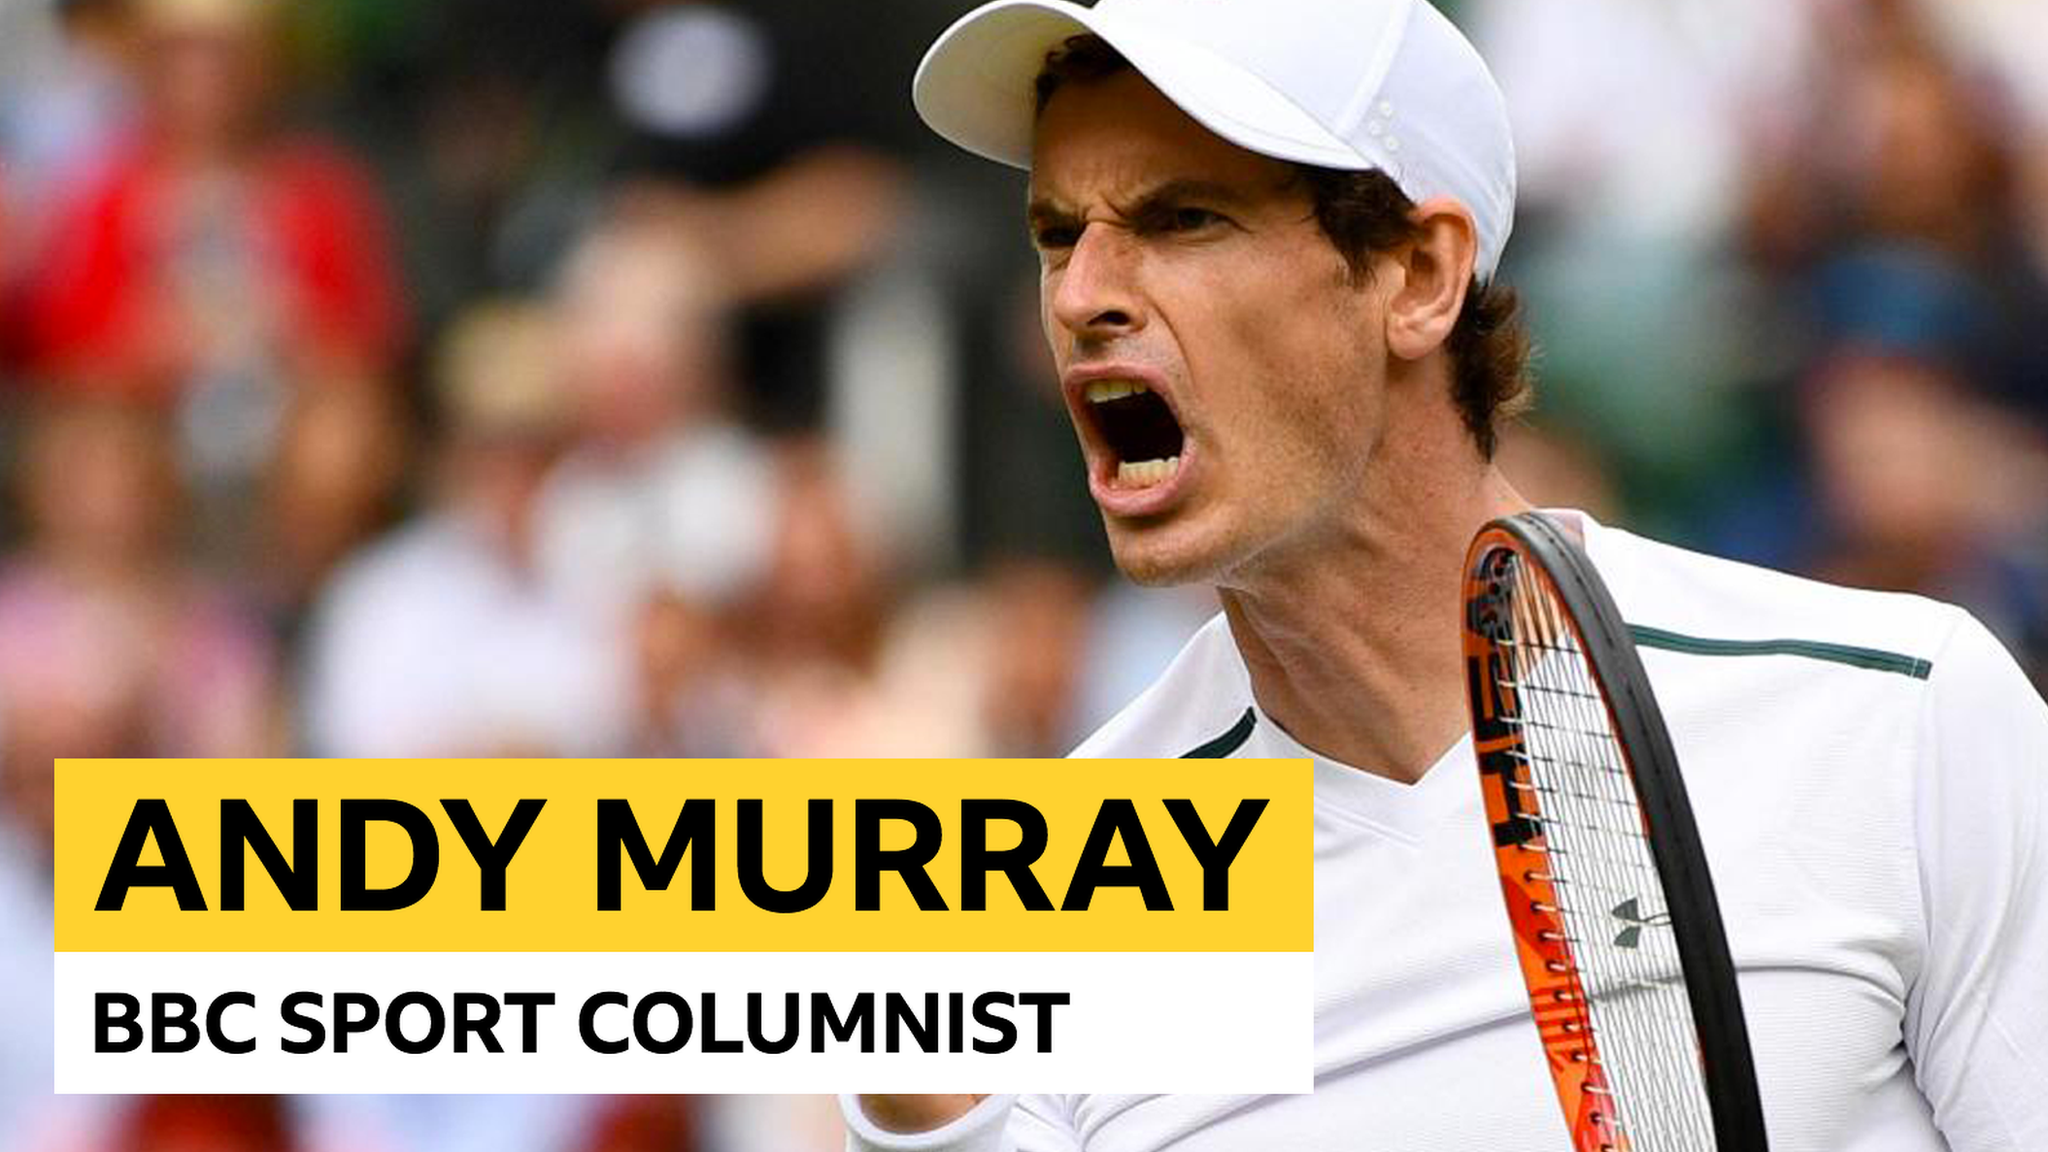 'I love playing tennis. I miss it a lot' - how Murray recovered from 'lowest point'